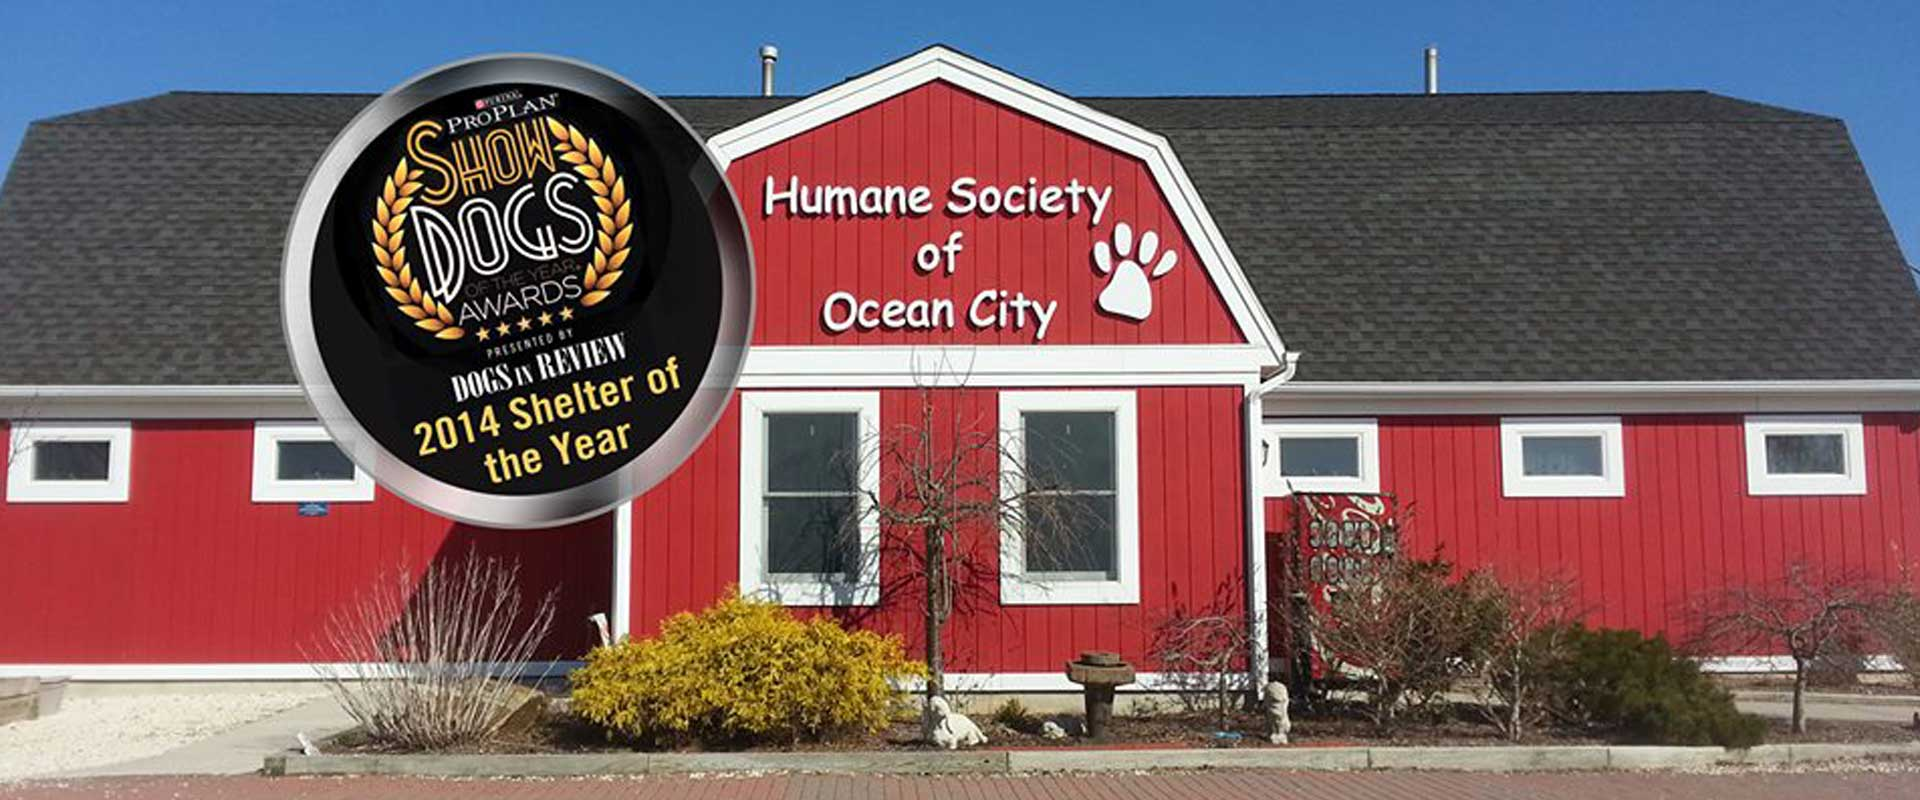 Humane Society of Ocean City - New Jersey - Adoptions